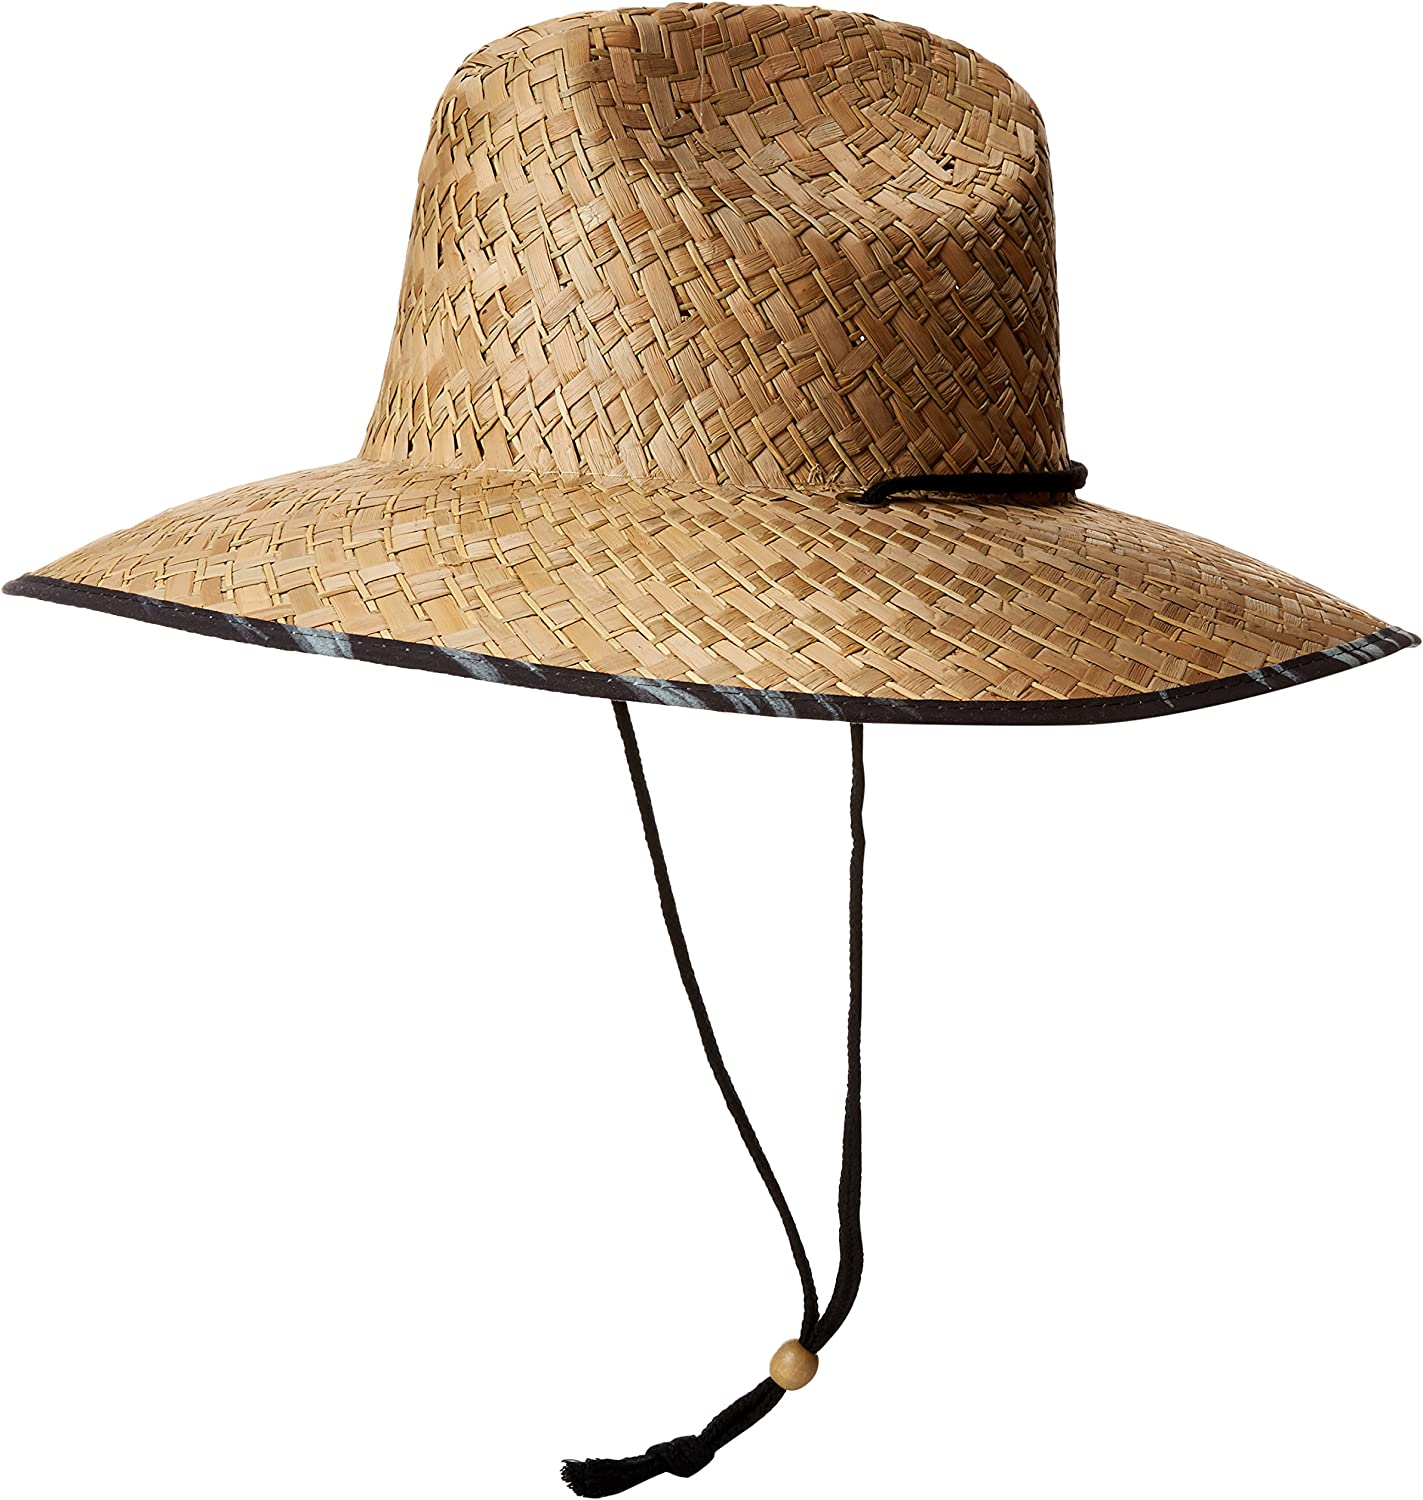 San Diego Hat Co. Men's Straw Lifeguard Hat with Adjustabel Chin Cord